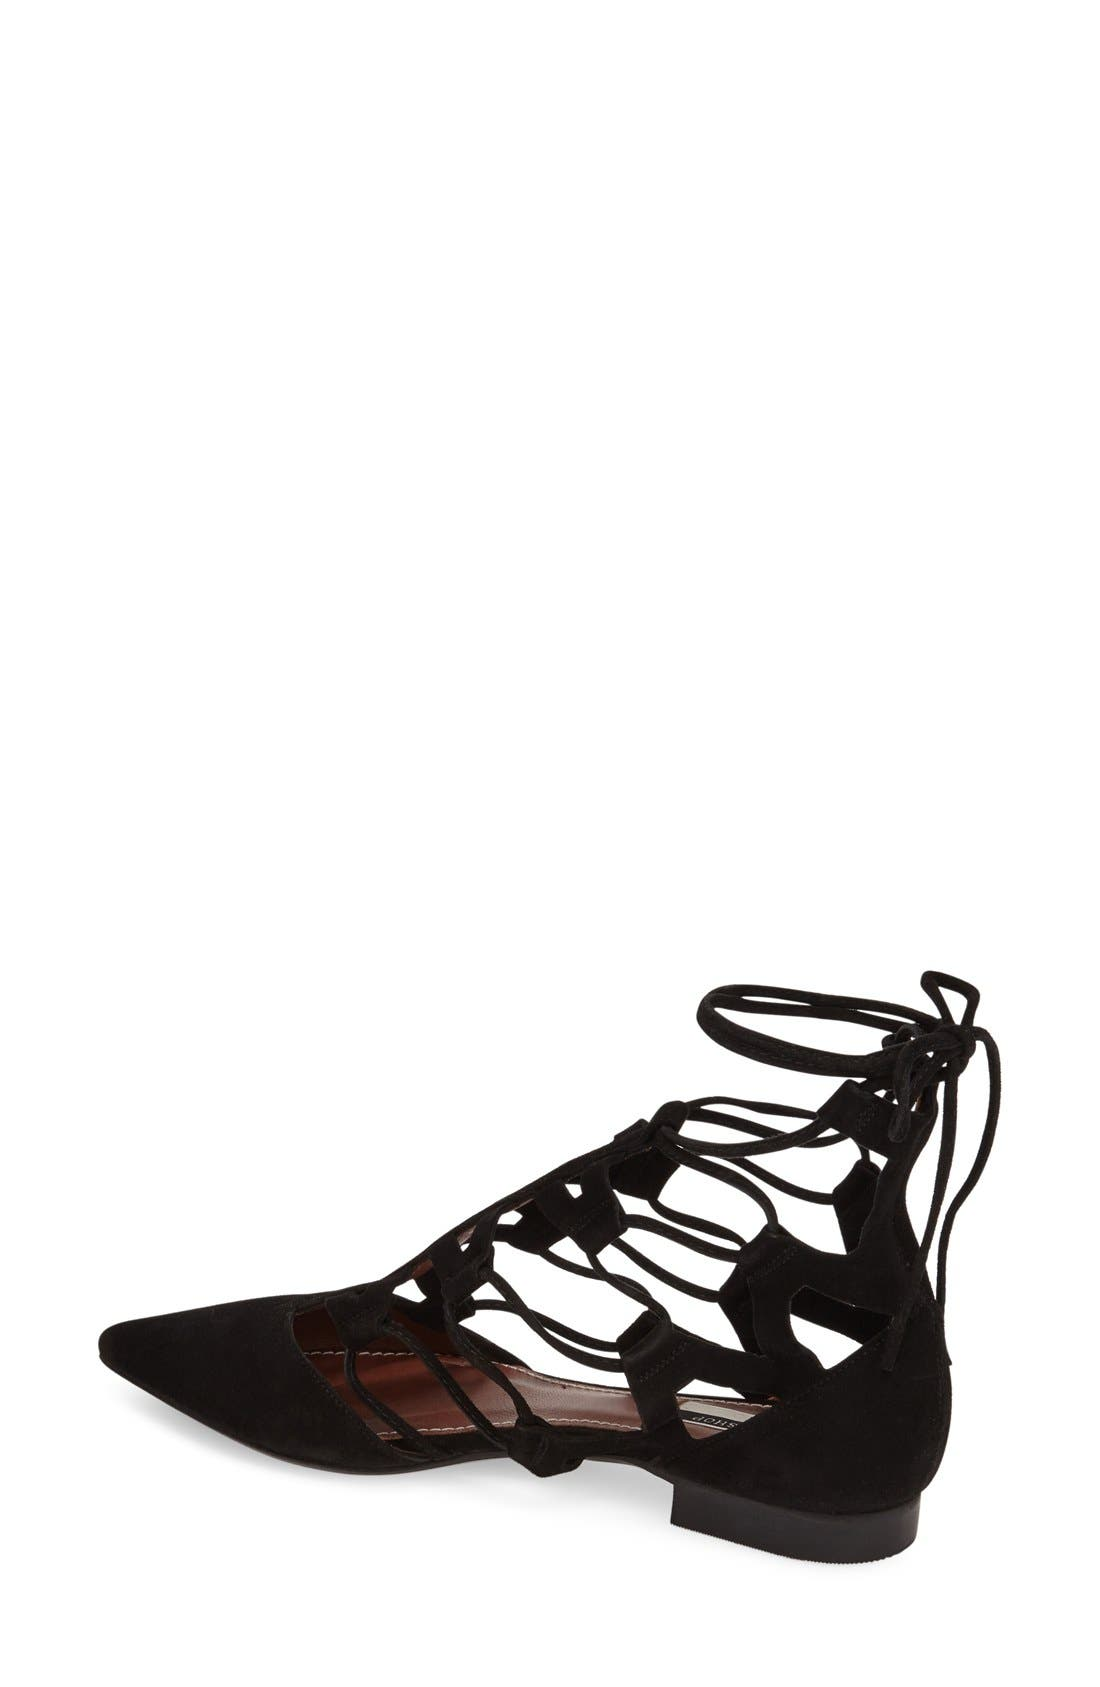 Alternate Image 2  - Topshop 'Posy' Pointy Toe Ghillie Flat (Women)